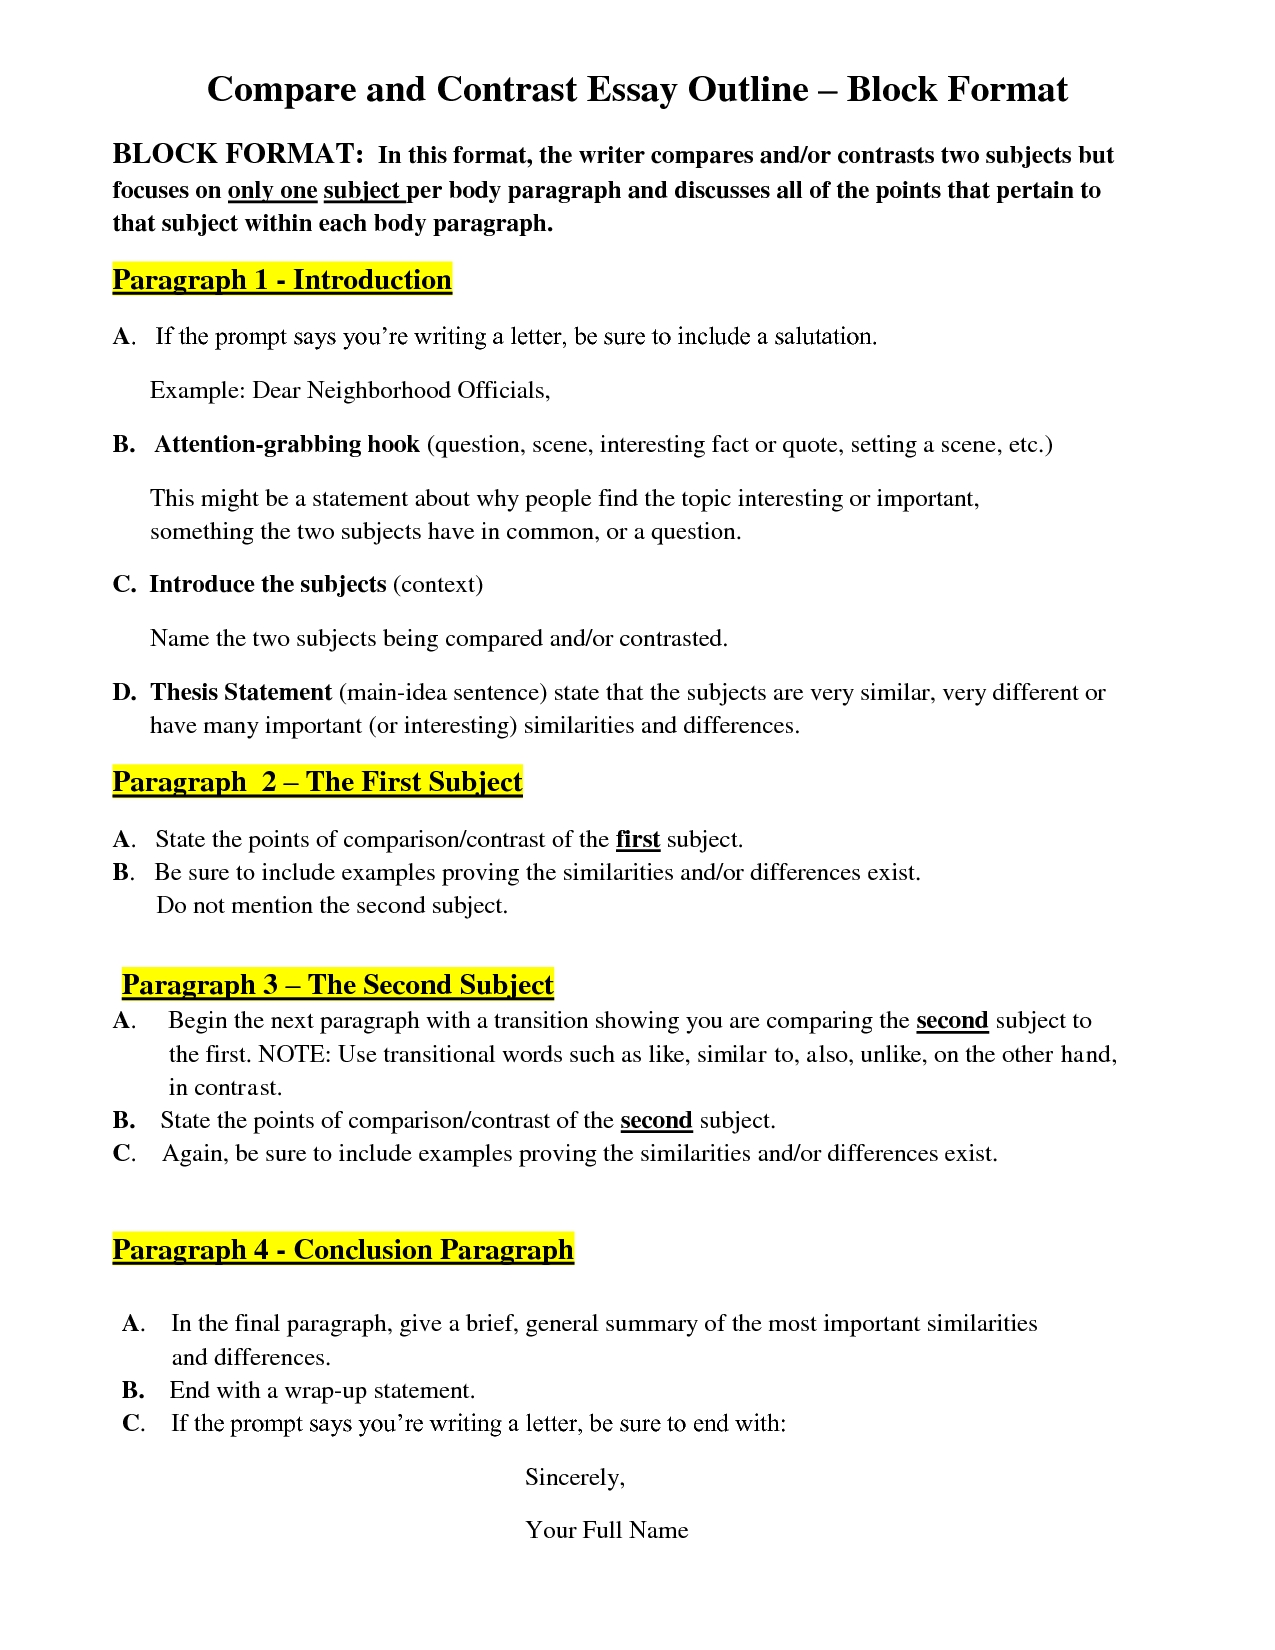 10 Best Ideas For Compare And Contrast Essay ideas for compare and contrast essays compare and contrast essay 2020